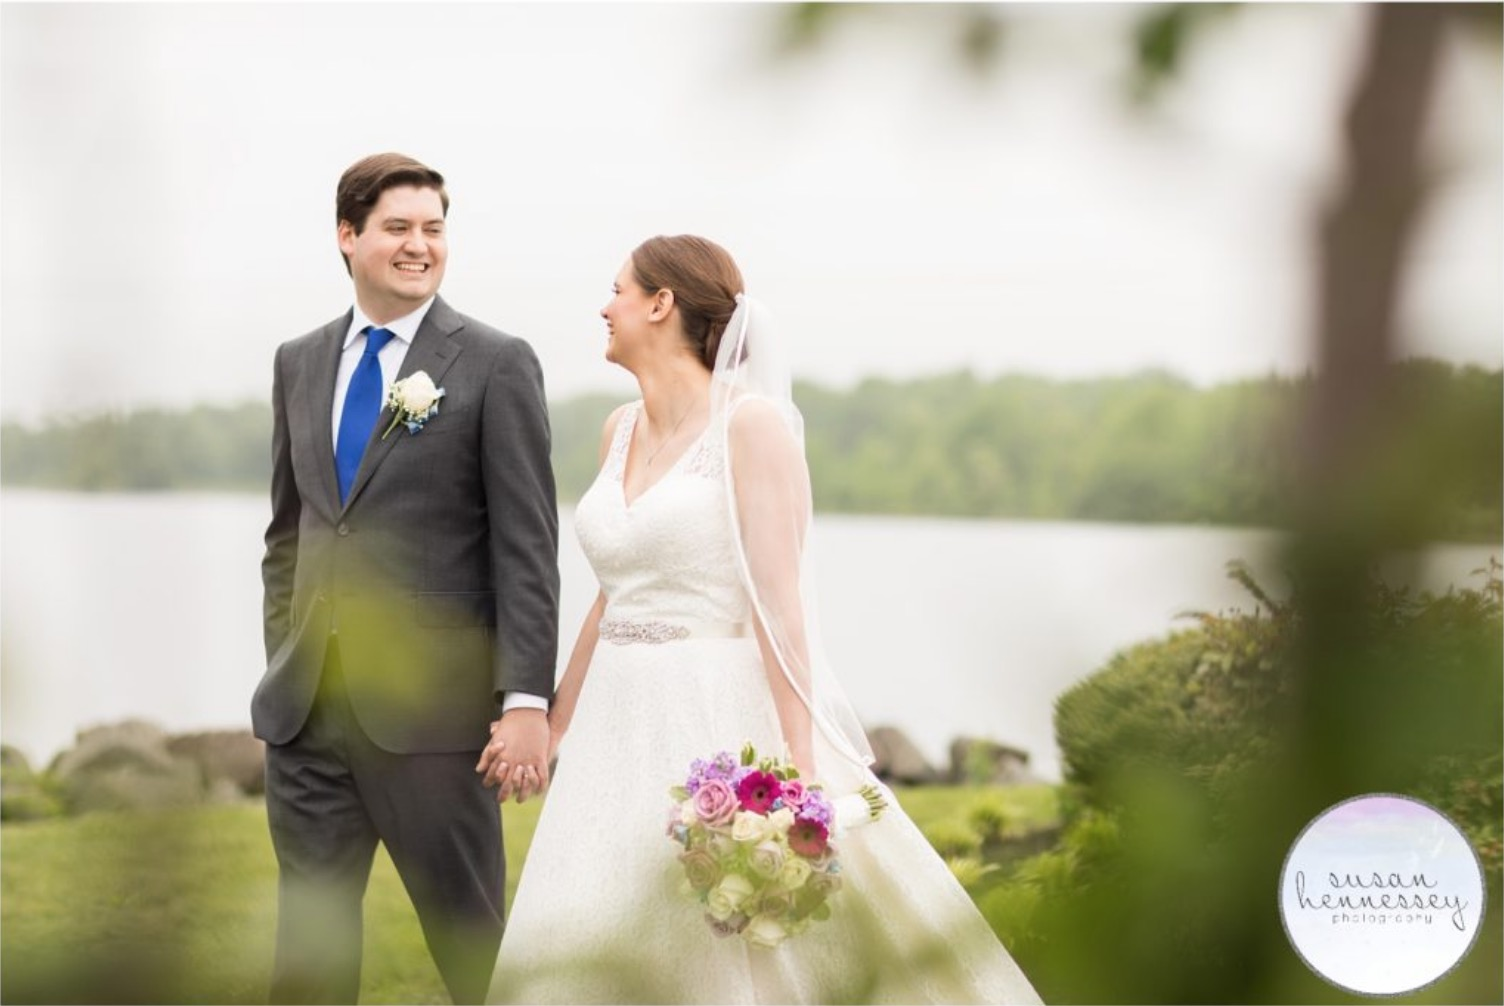 Amy + James on May 19, 2019 ♥ Susan Hennessey Photography at Boathouse at Mercer Lake (West Windsor, NJ)